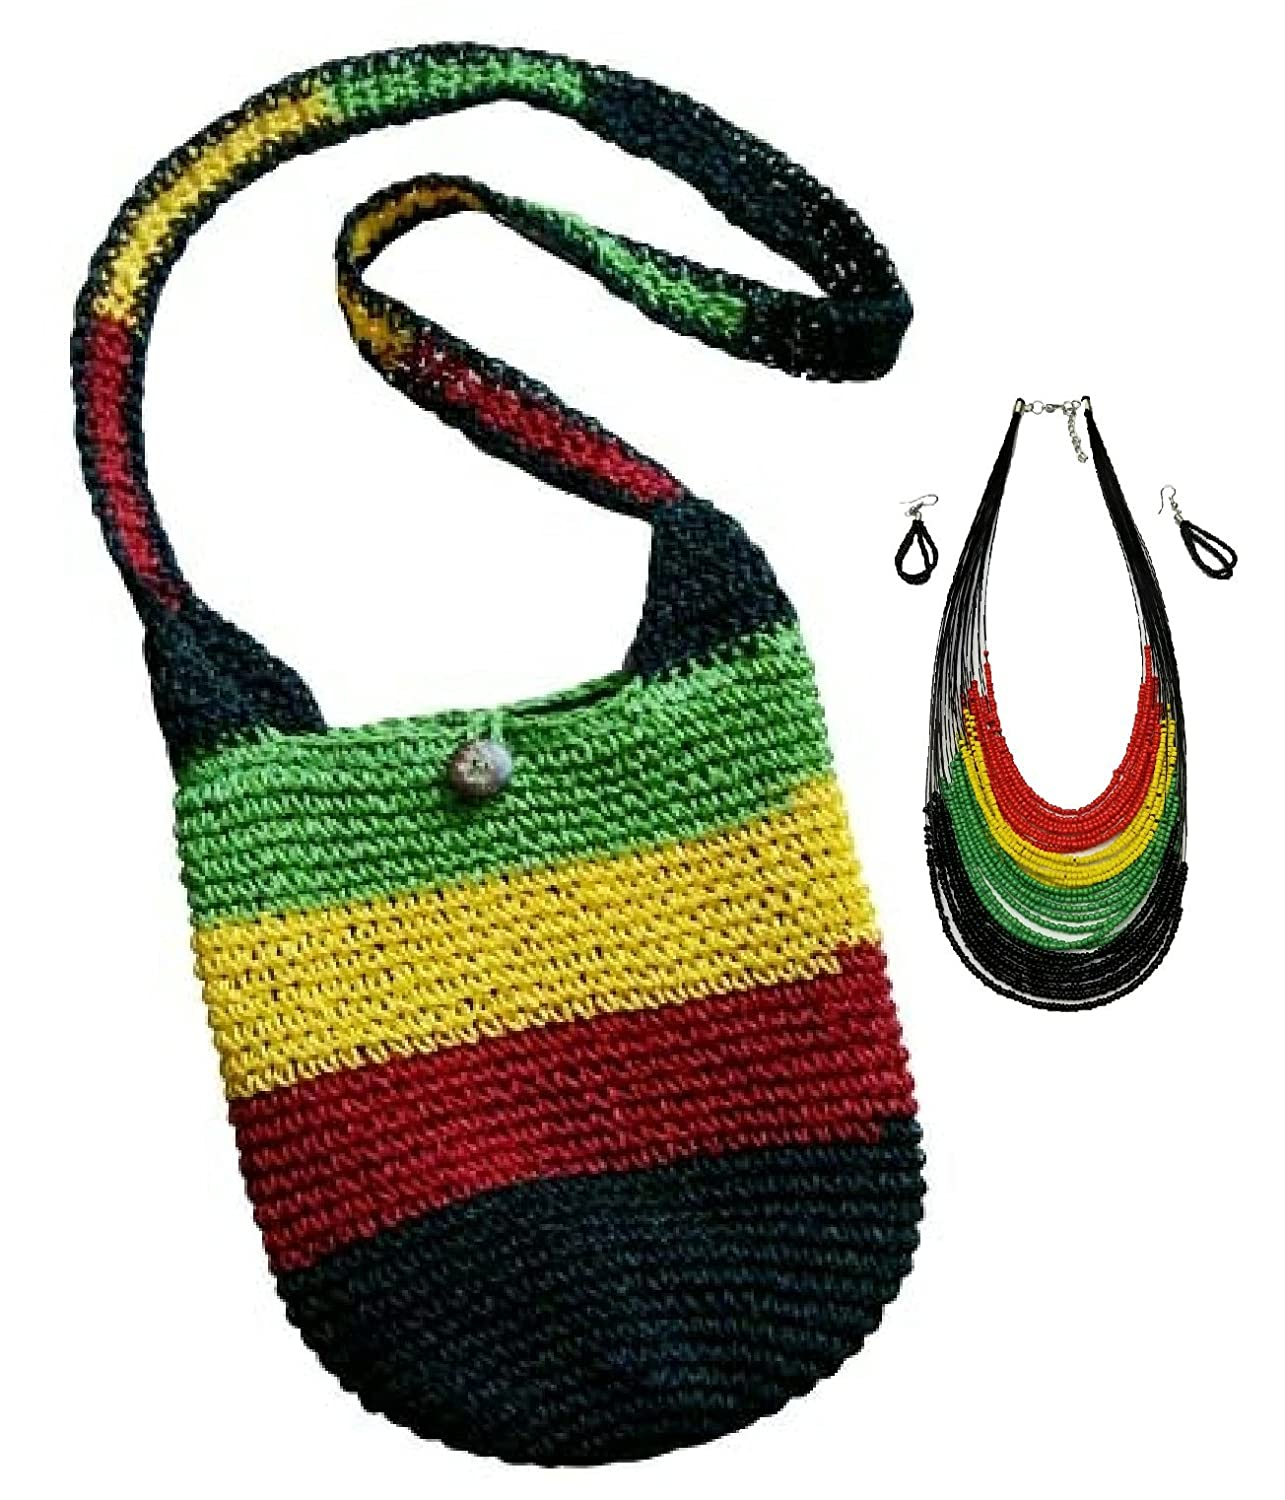 2 Pcs Rasta Jamaica Shoulder Bag Reggae Hippie Beach tote Handbag w//Rastafari Earring and Necklace set